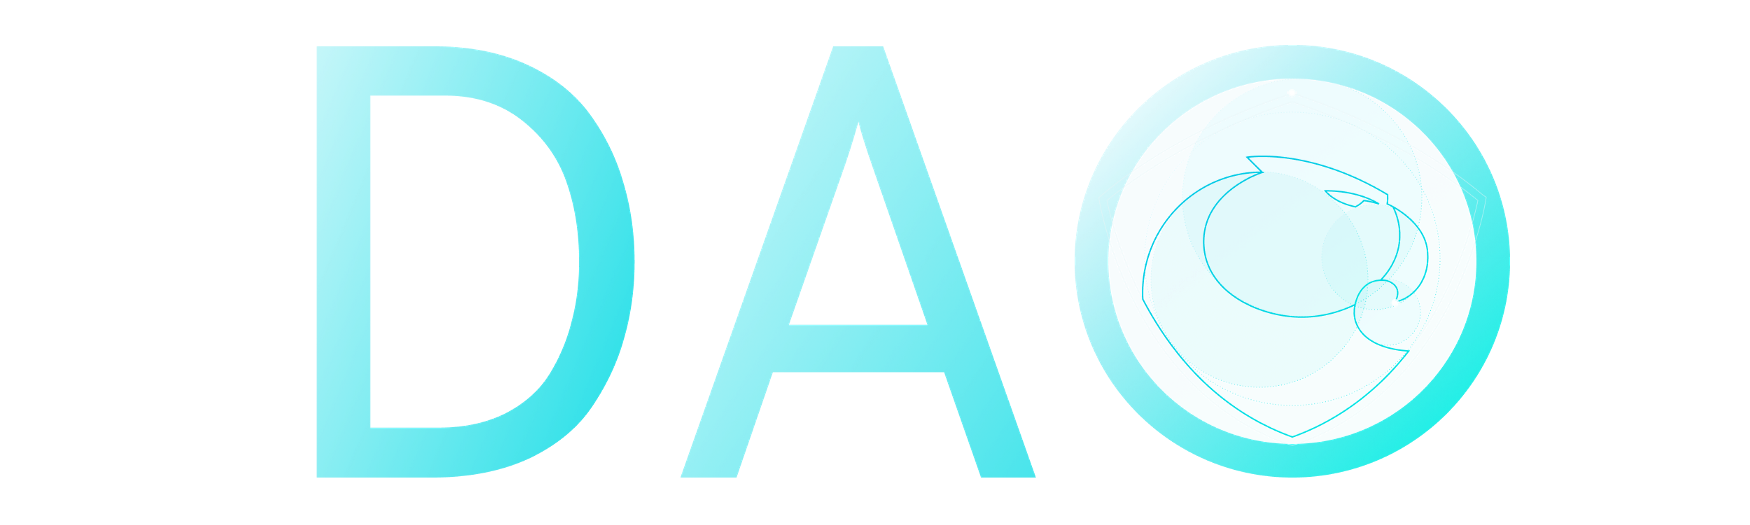 Bringing DAOs back—Aragon Monthly